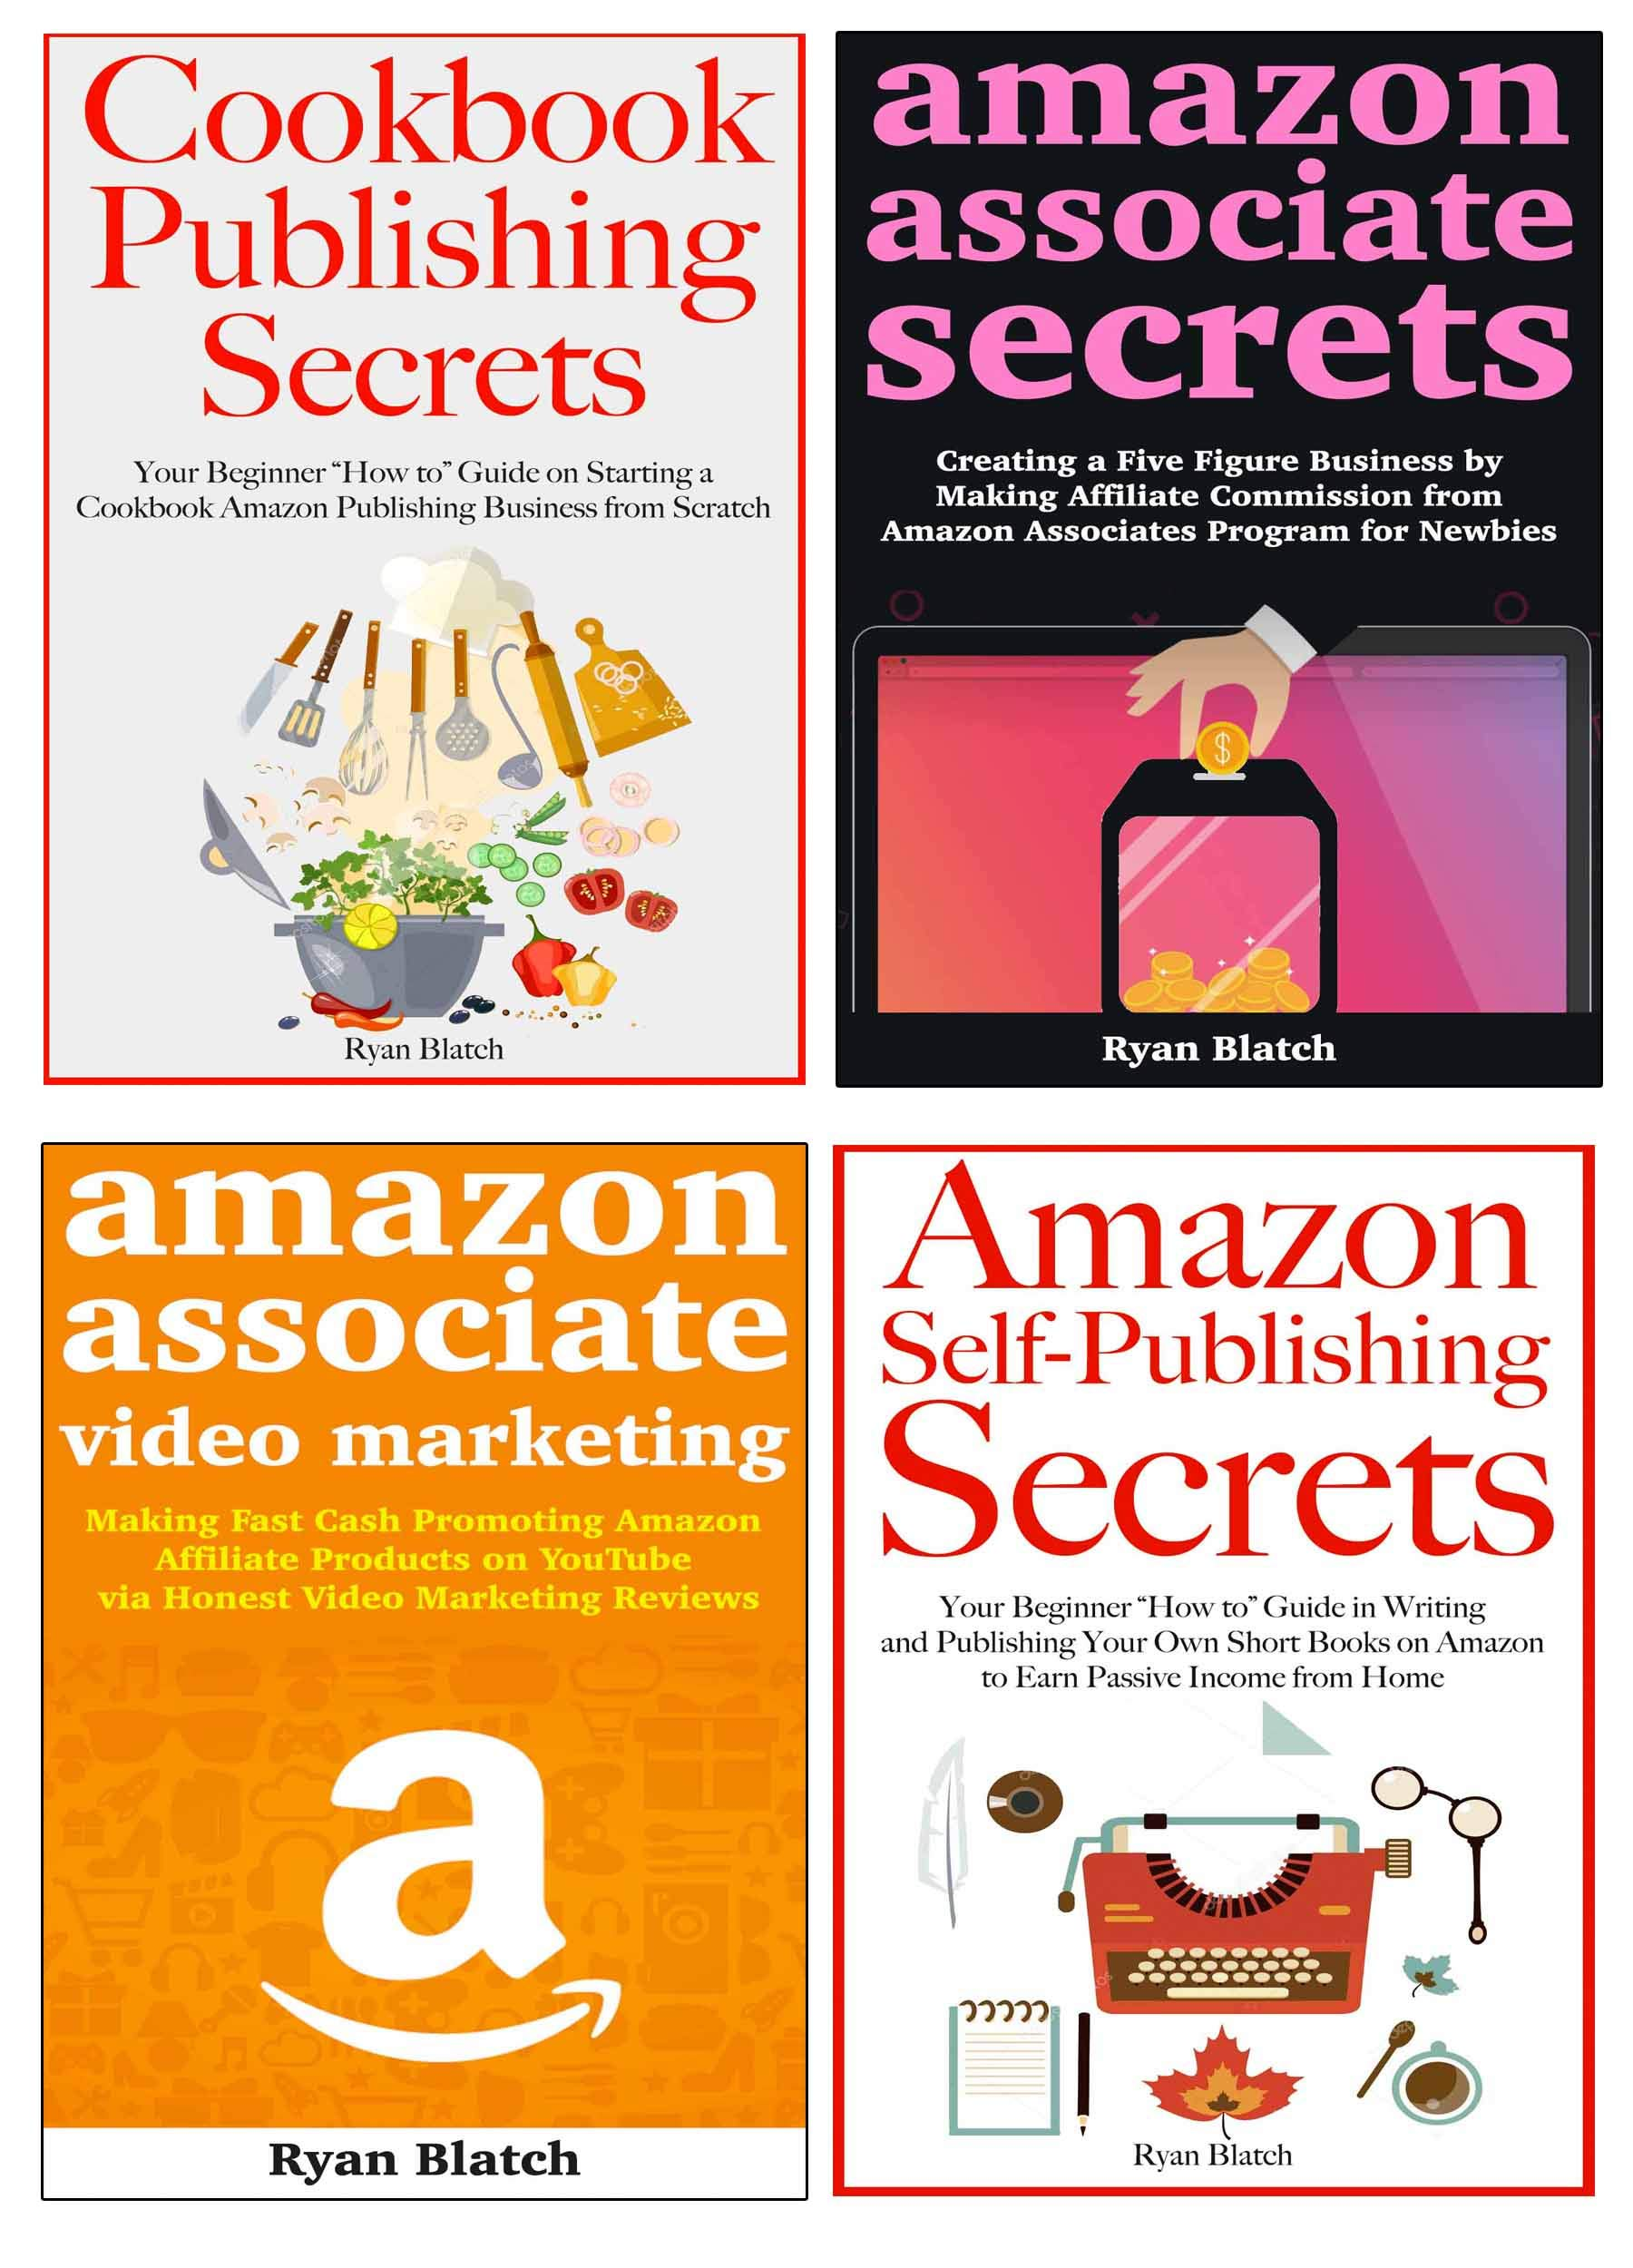 Amazon Profit Secrets (Online Based Business Bundle for Amazon Marketing): Making a Living and Nice Profits from 4 Amazon Based Business Models Perfect for Beginners Without Huge Capital